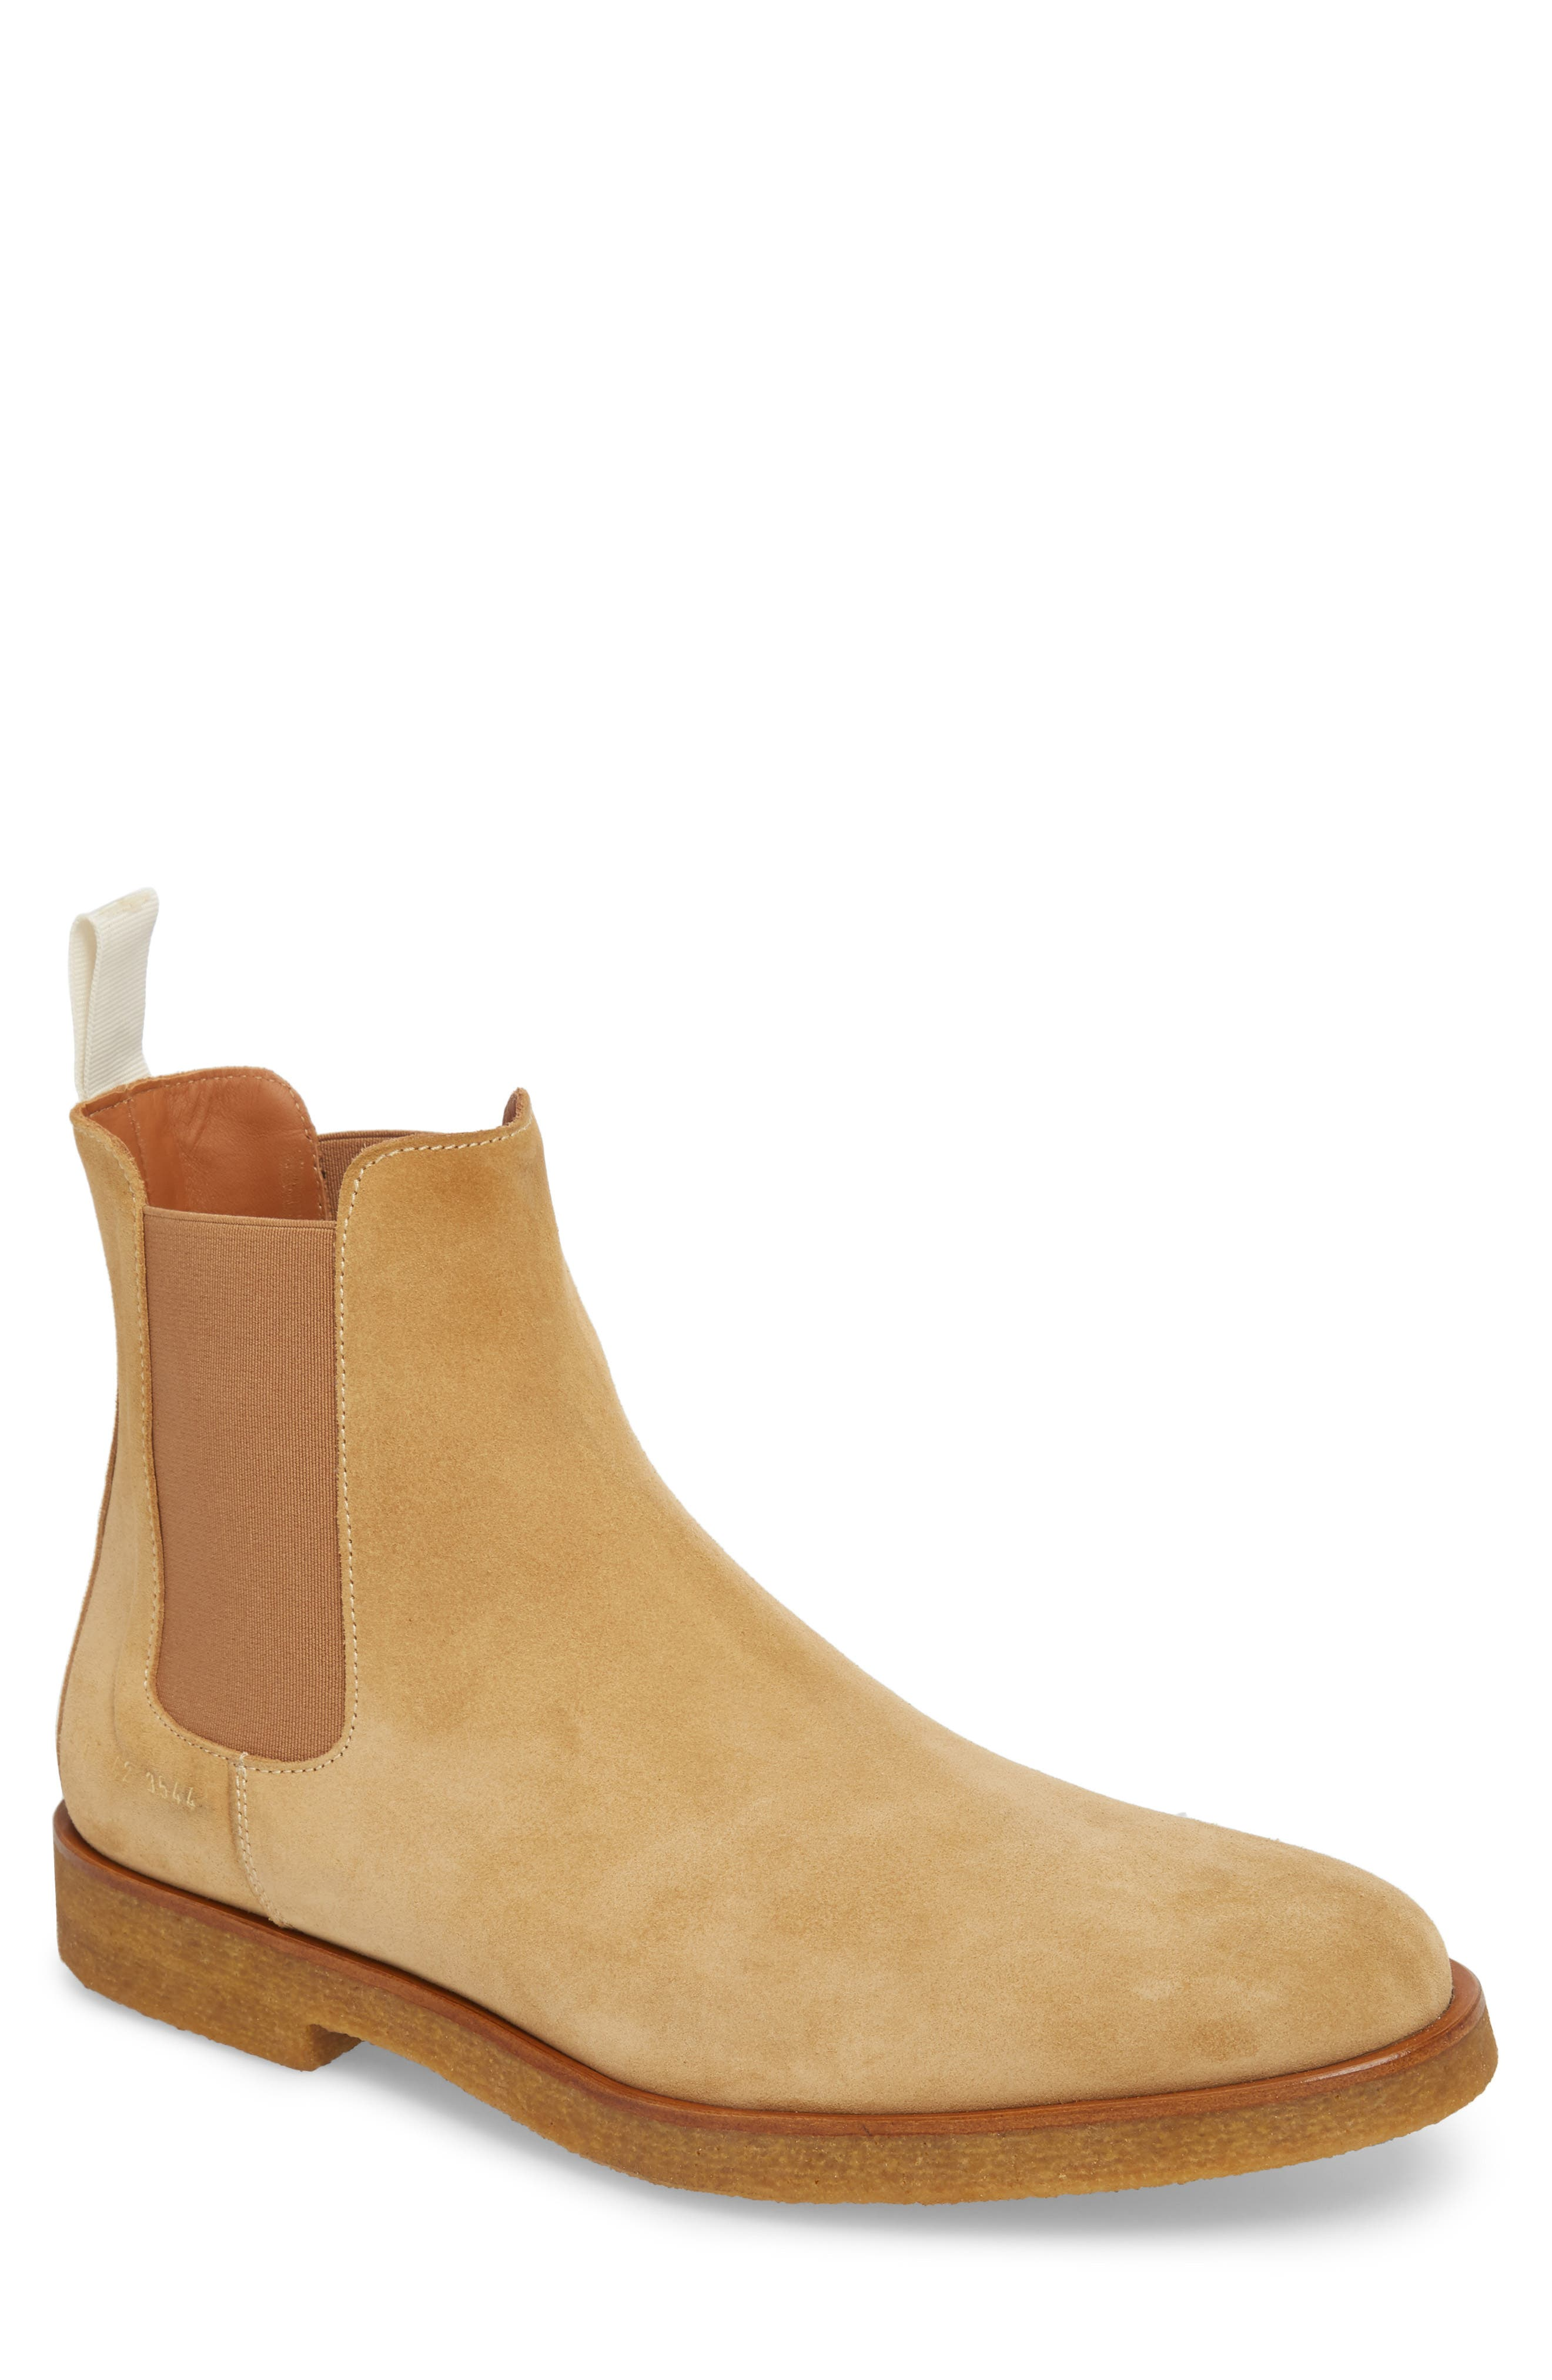 Chelsea Boot,                         Main,                         color, AMBER SUEDE